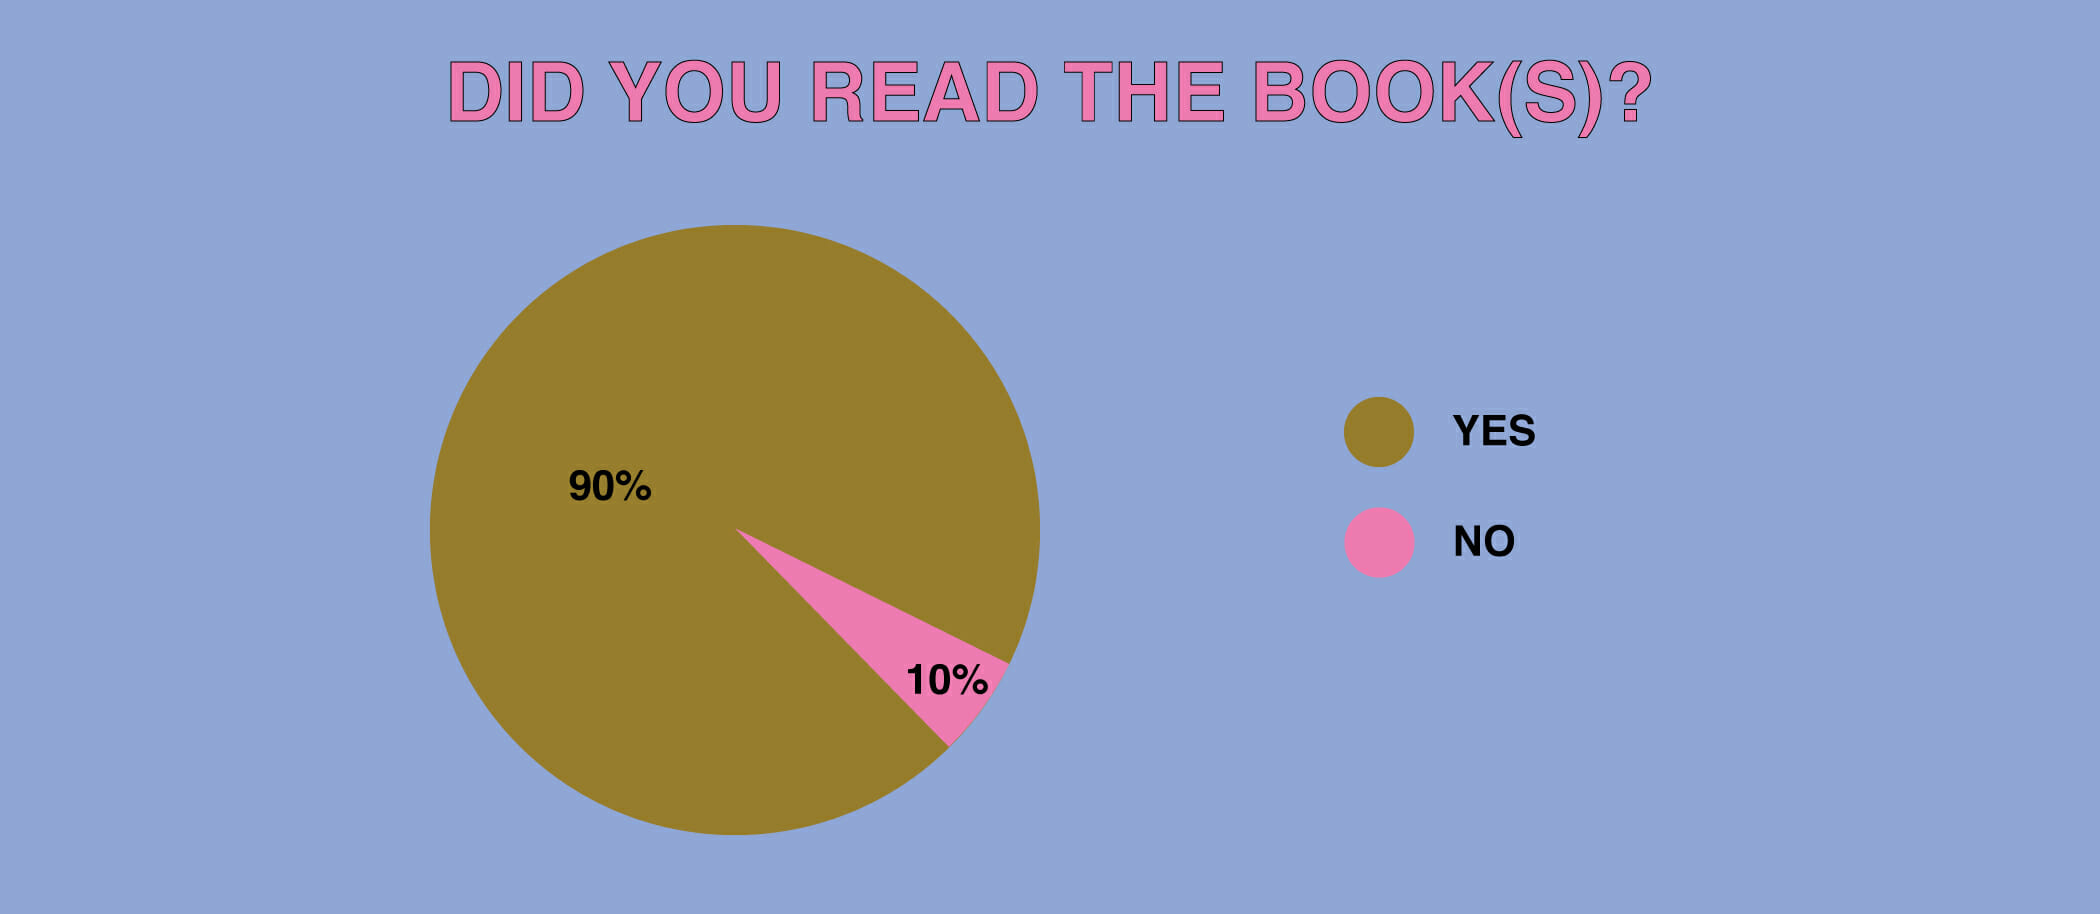 Did you read the book(s)?